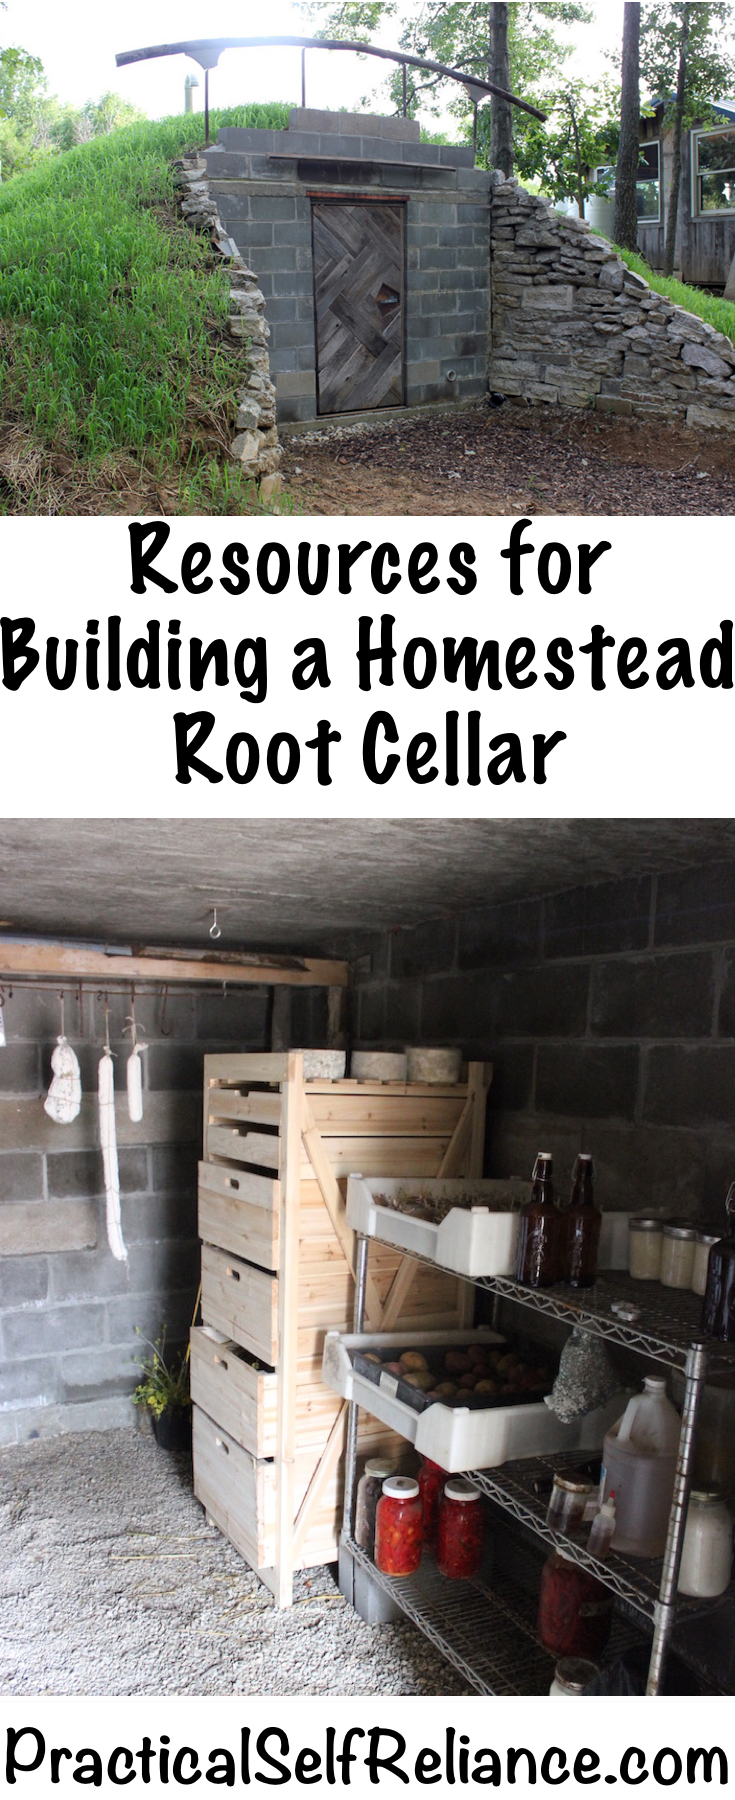 Resources for Building a Homestead Root Cellar - Practical Self Reliance #rootcellar #foodstorage #preservingfood #foodpreservation #homestead #homesteading #selfsufficiency #selfreliant #preparedness #bookrecommendations